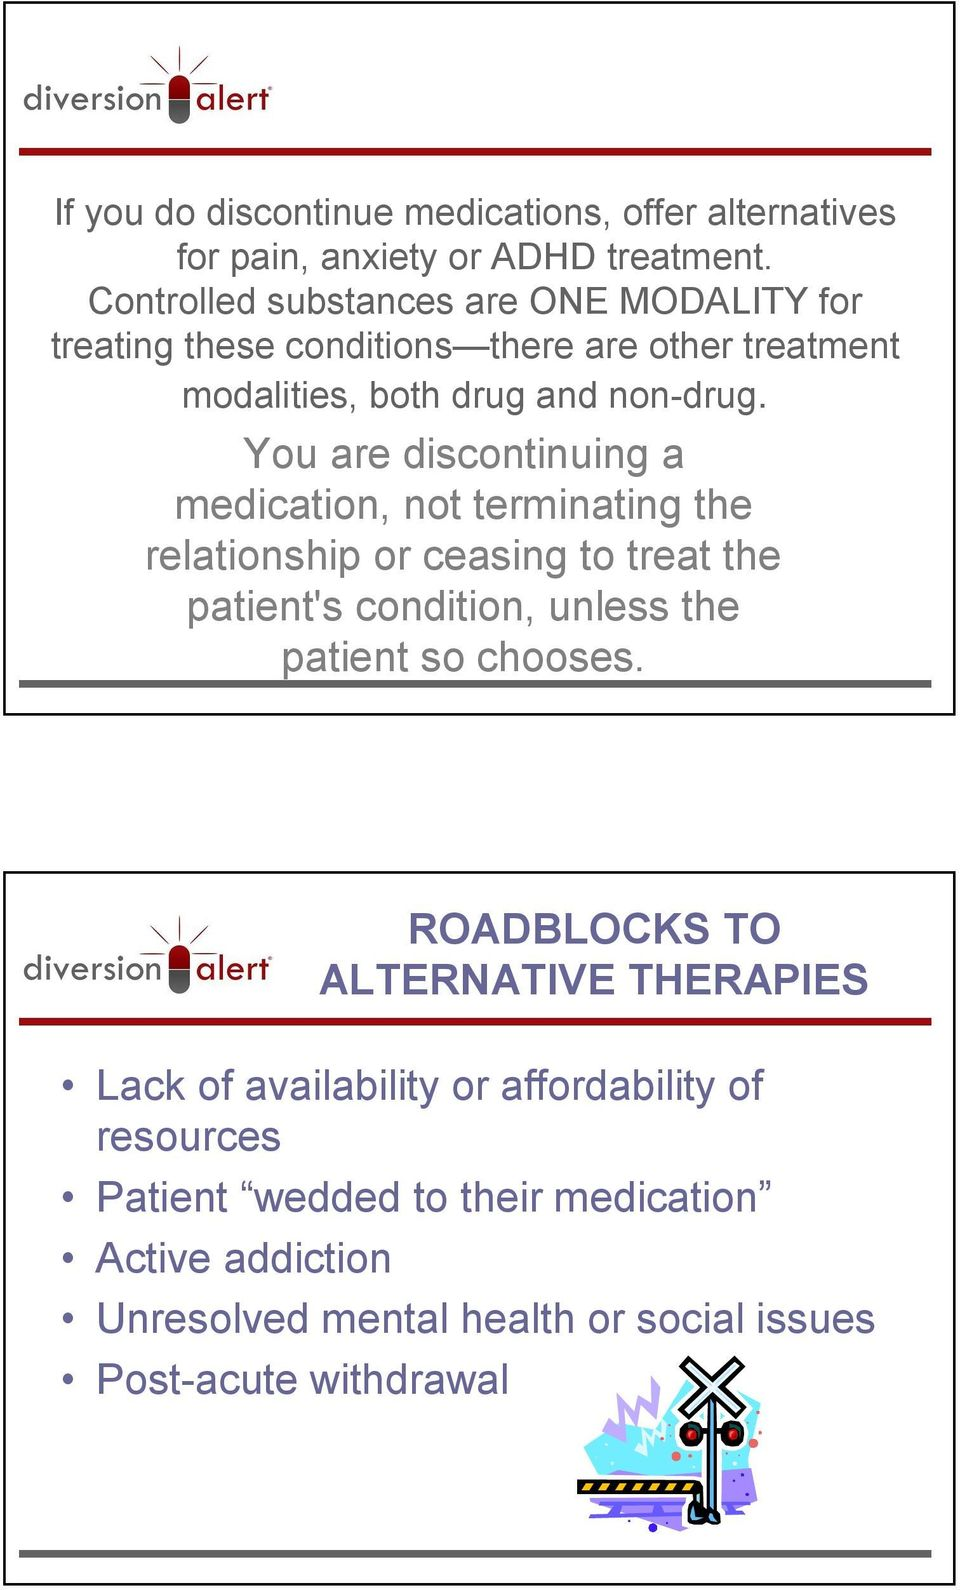 You are discontinuing a medication, not terminating the relationship or ceasing to treat the patient's condition, unless the patient so